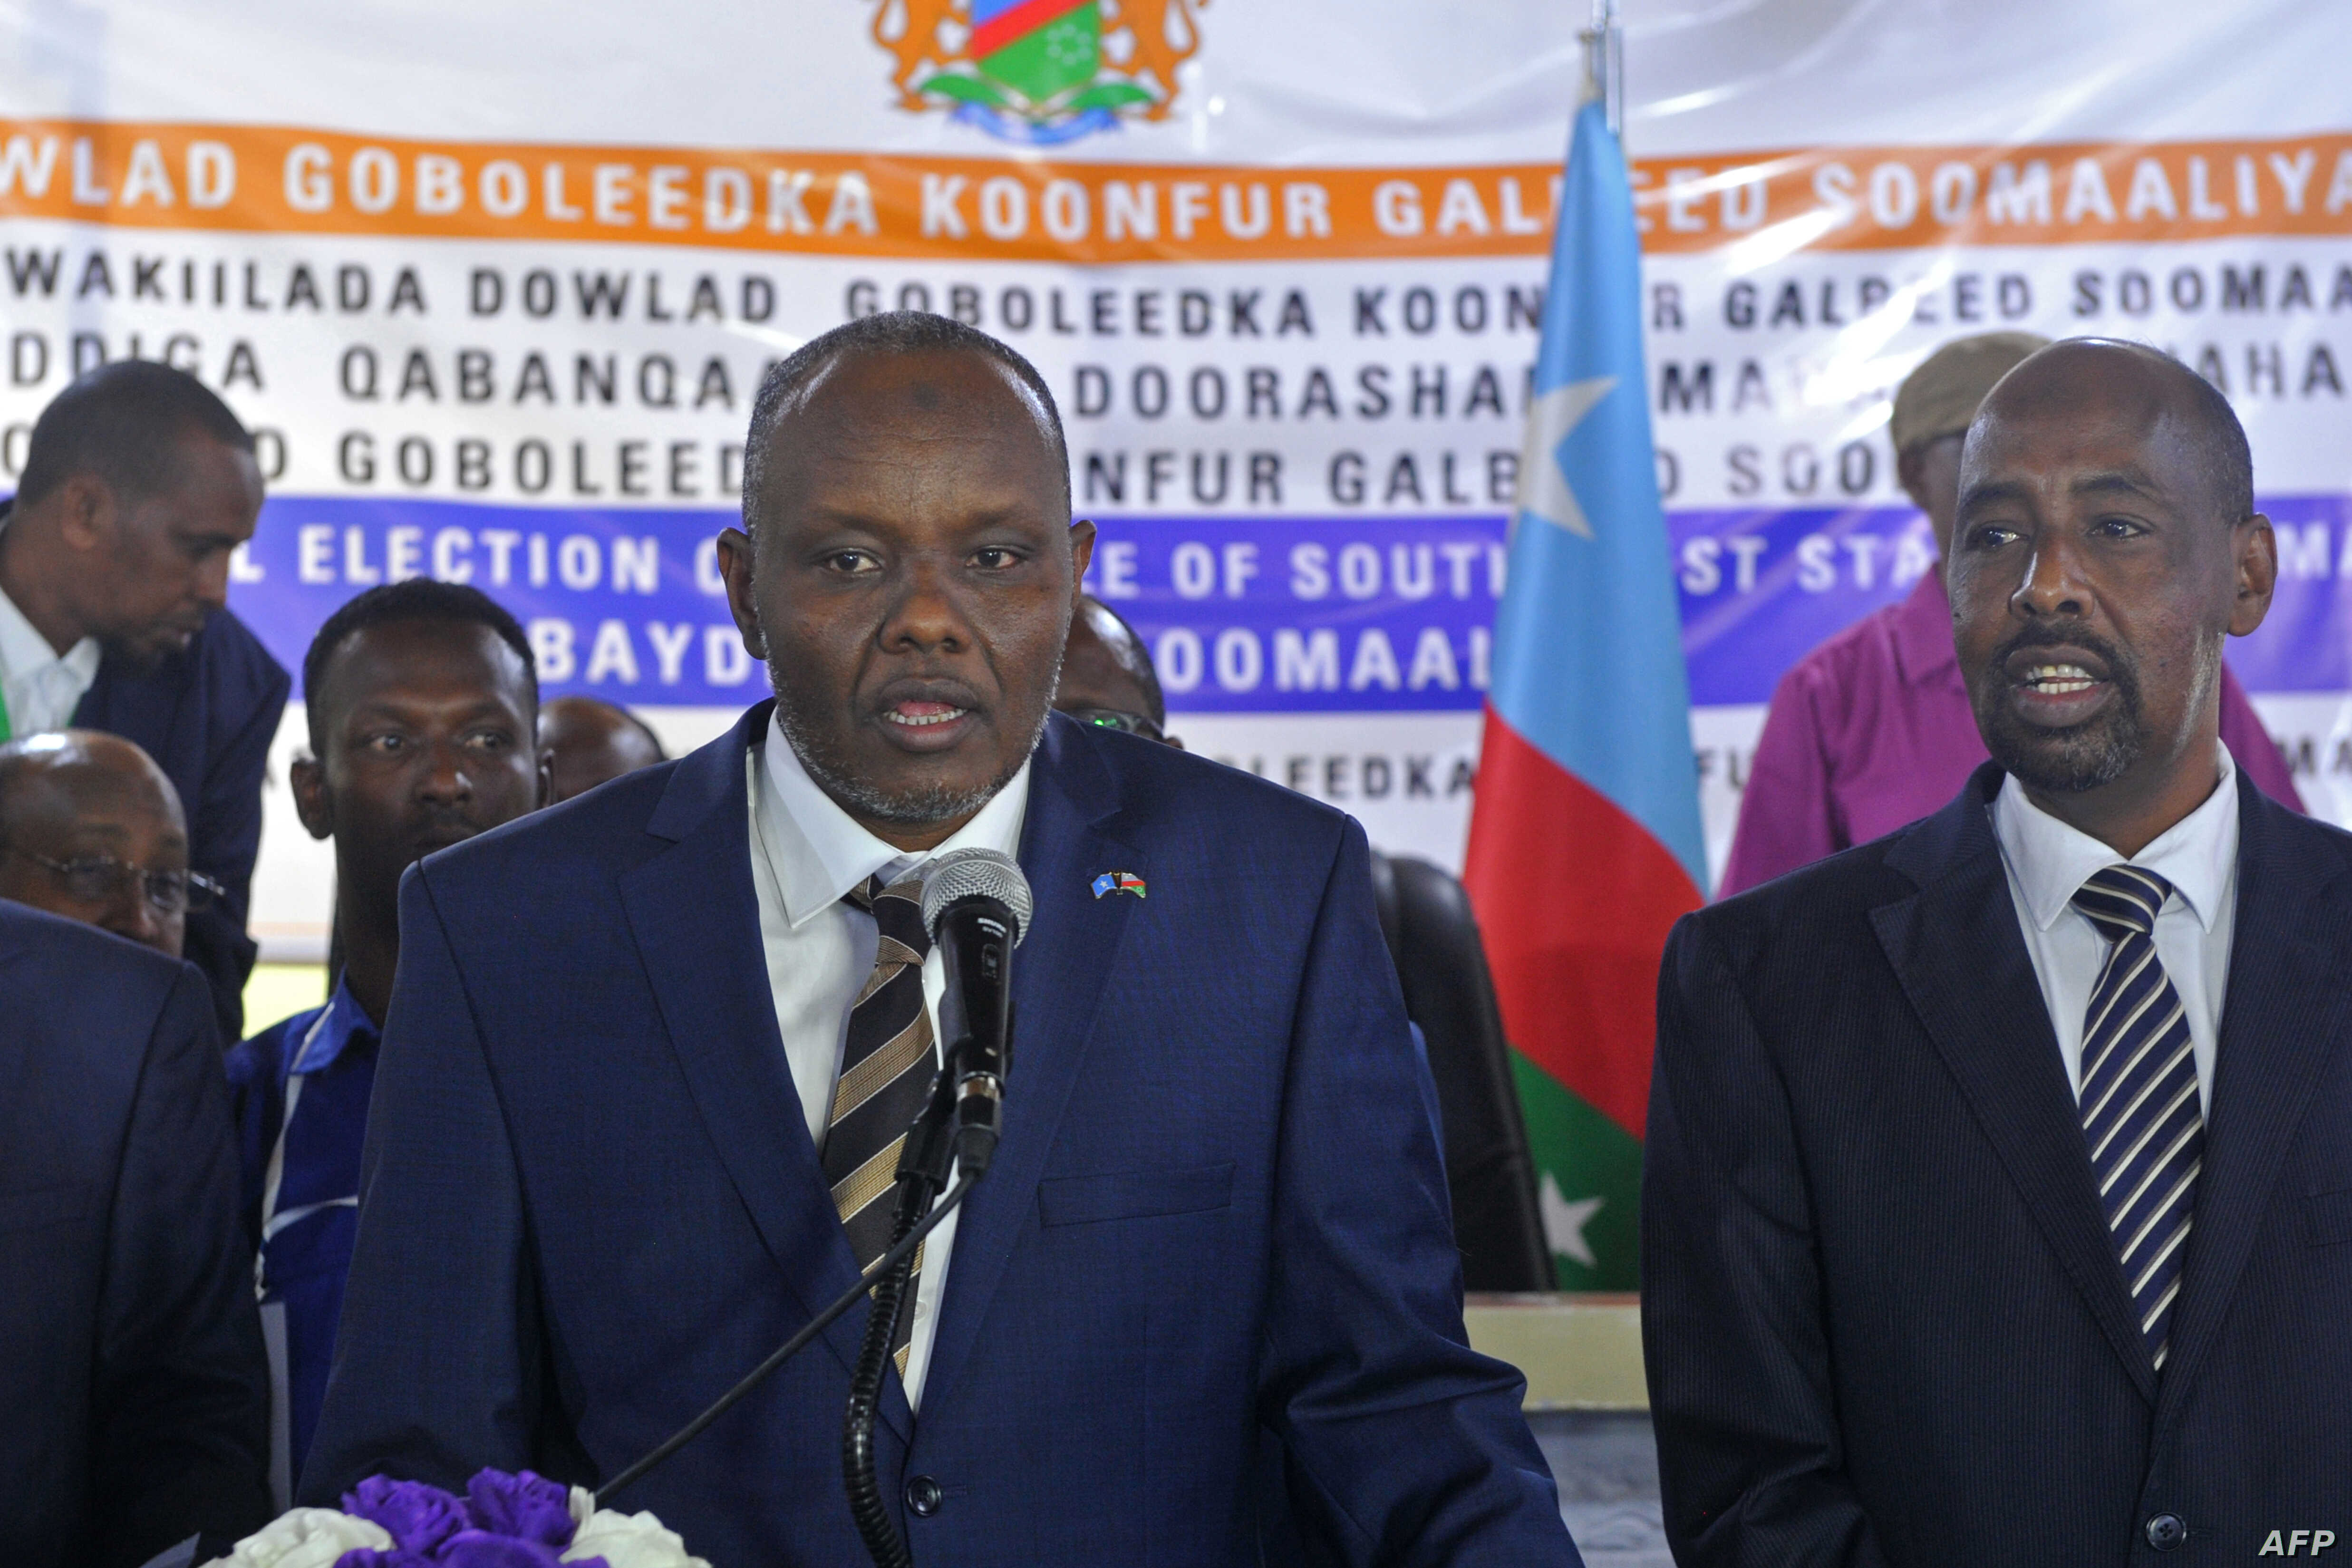 Somali Region Gets New President After Deadly Election Campaign